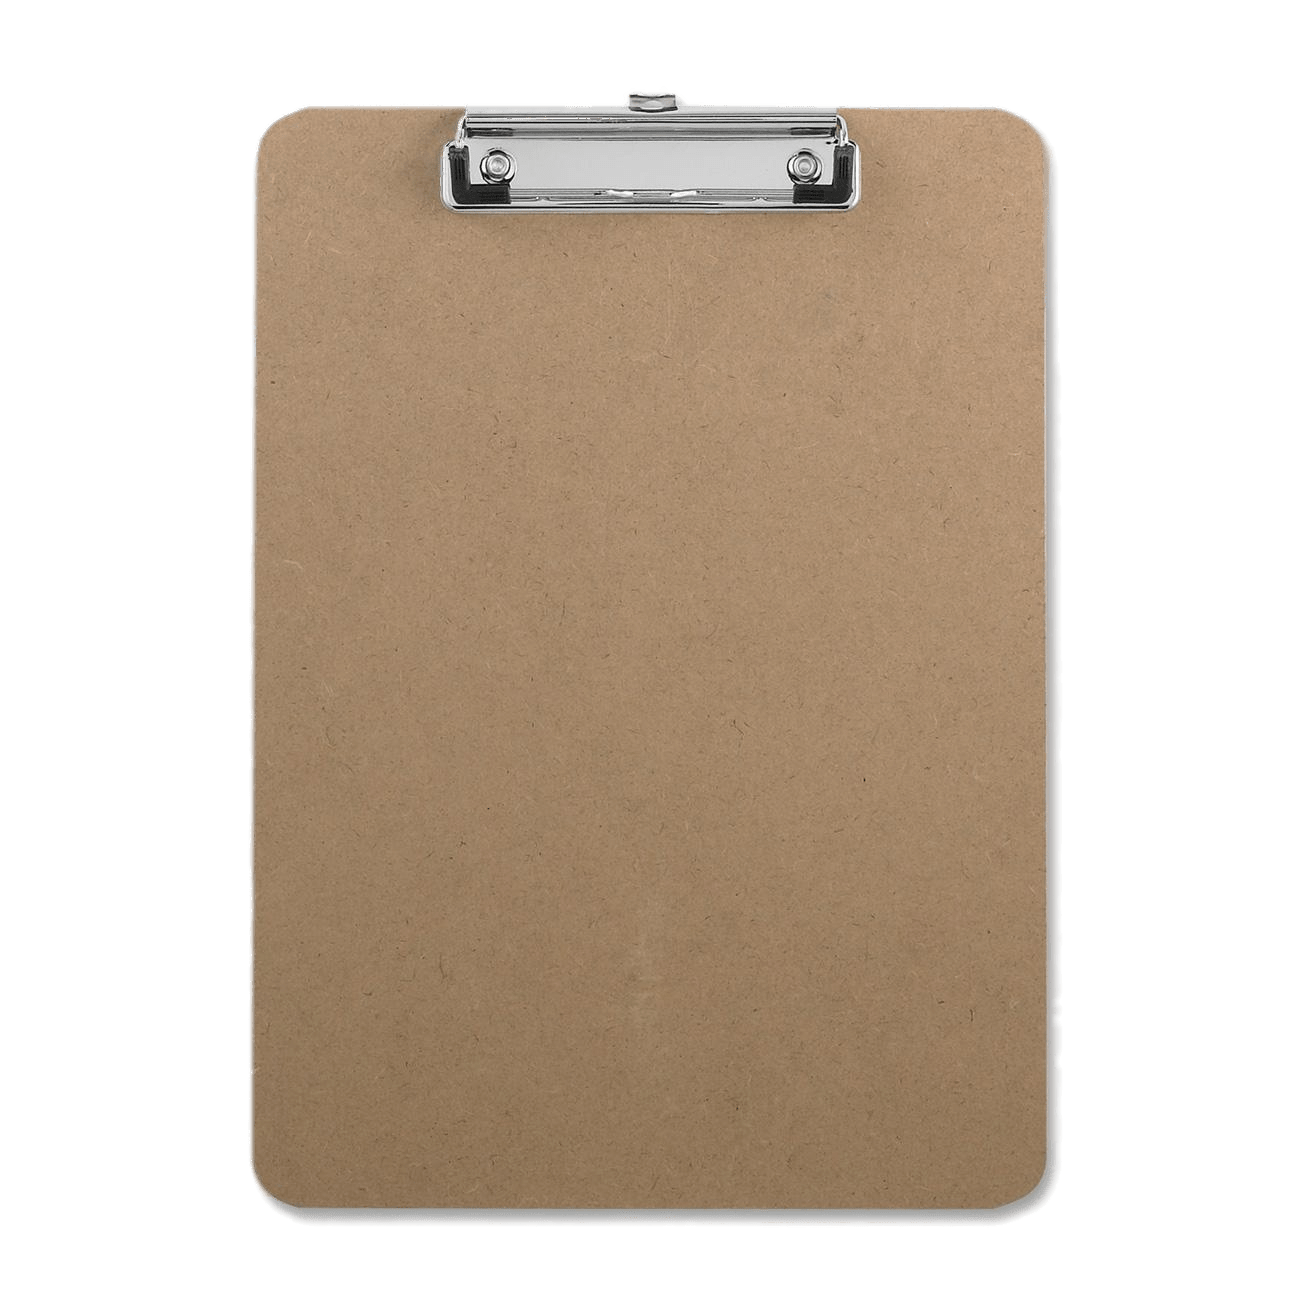 Clipboard clipart transparent background. Brown png stickpng